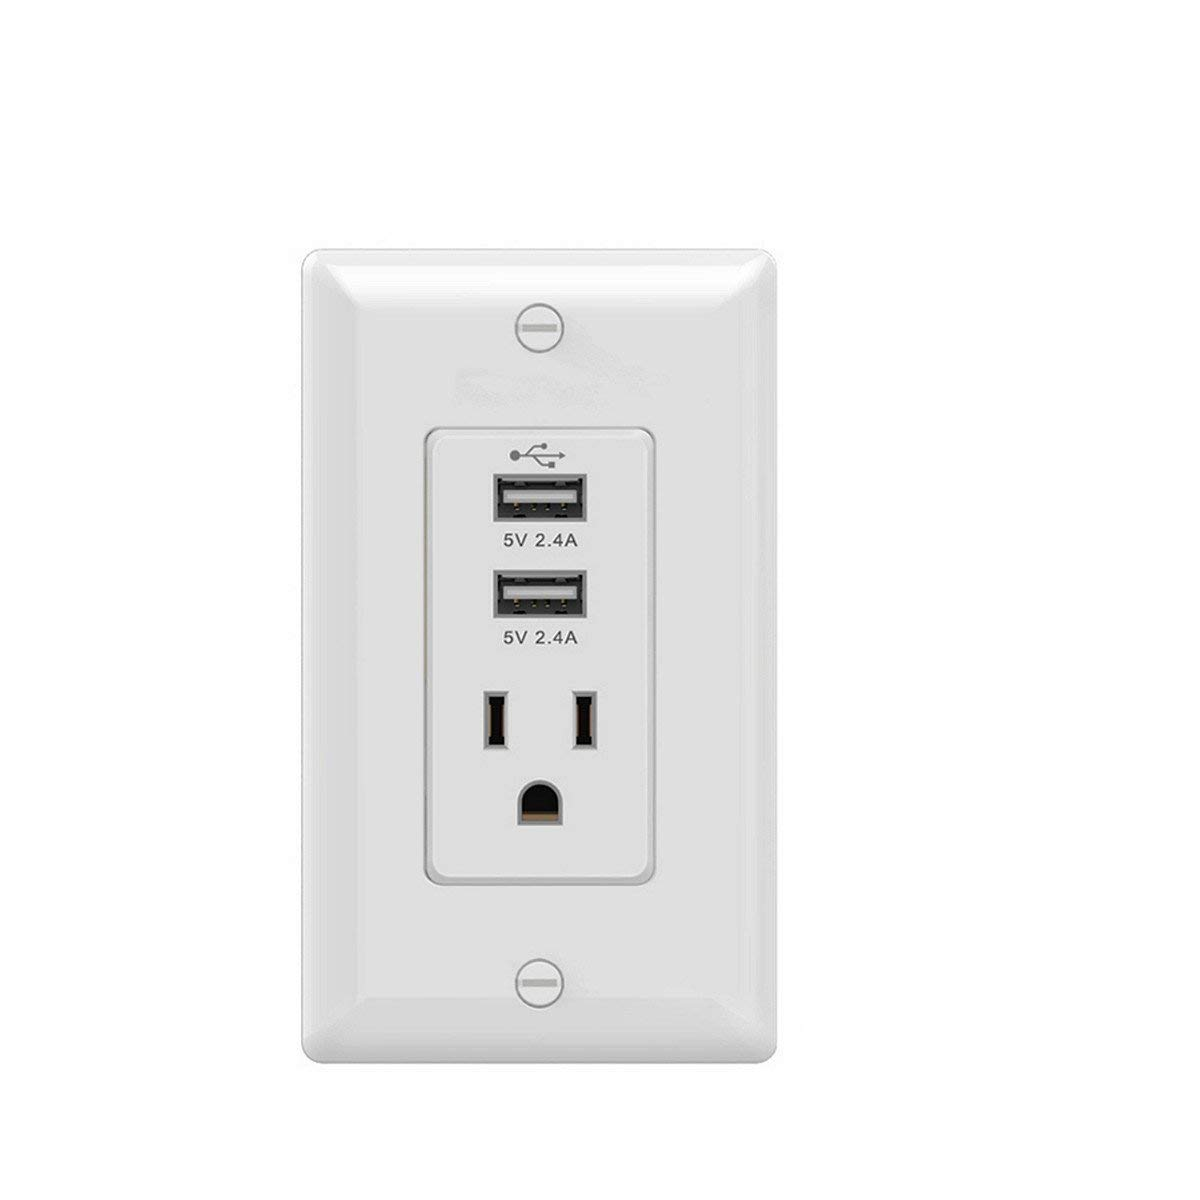 Standard Outlet Dual USB Ports Wall Mount Power Plate Receptacle Rating: 15A, 125VAC, 60Hz White